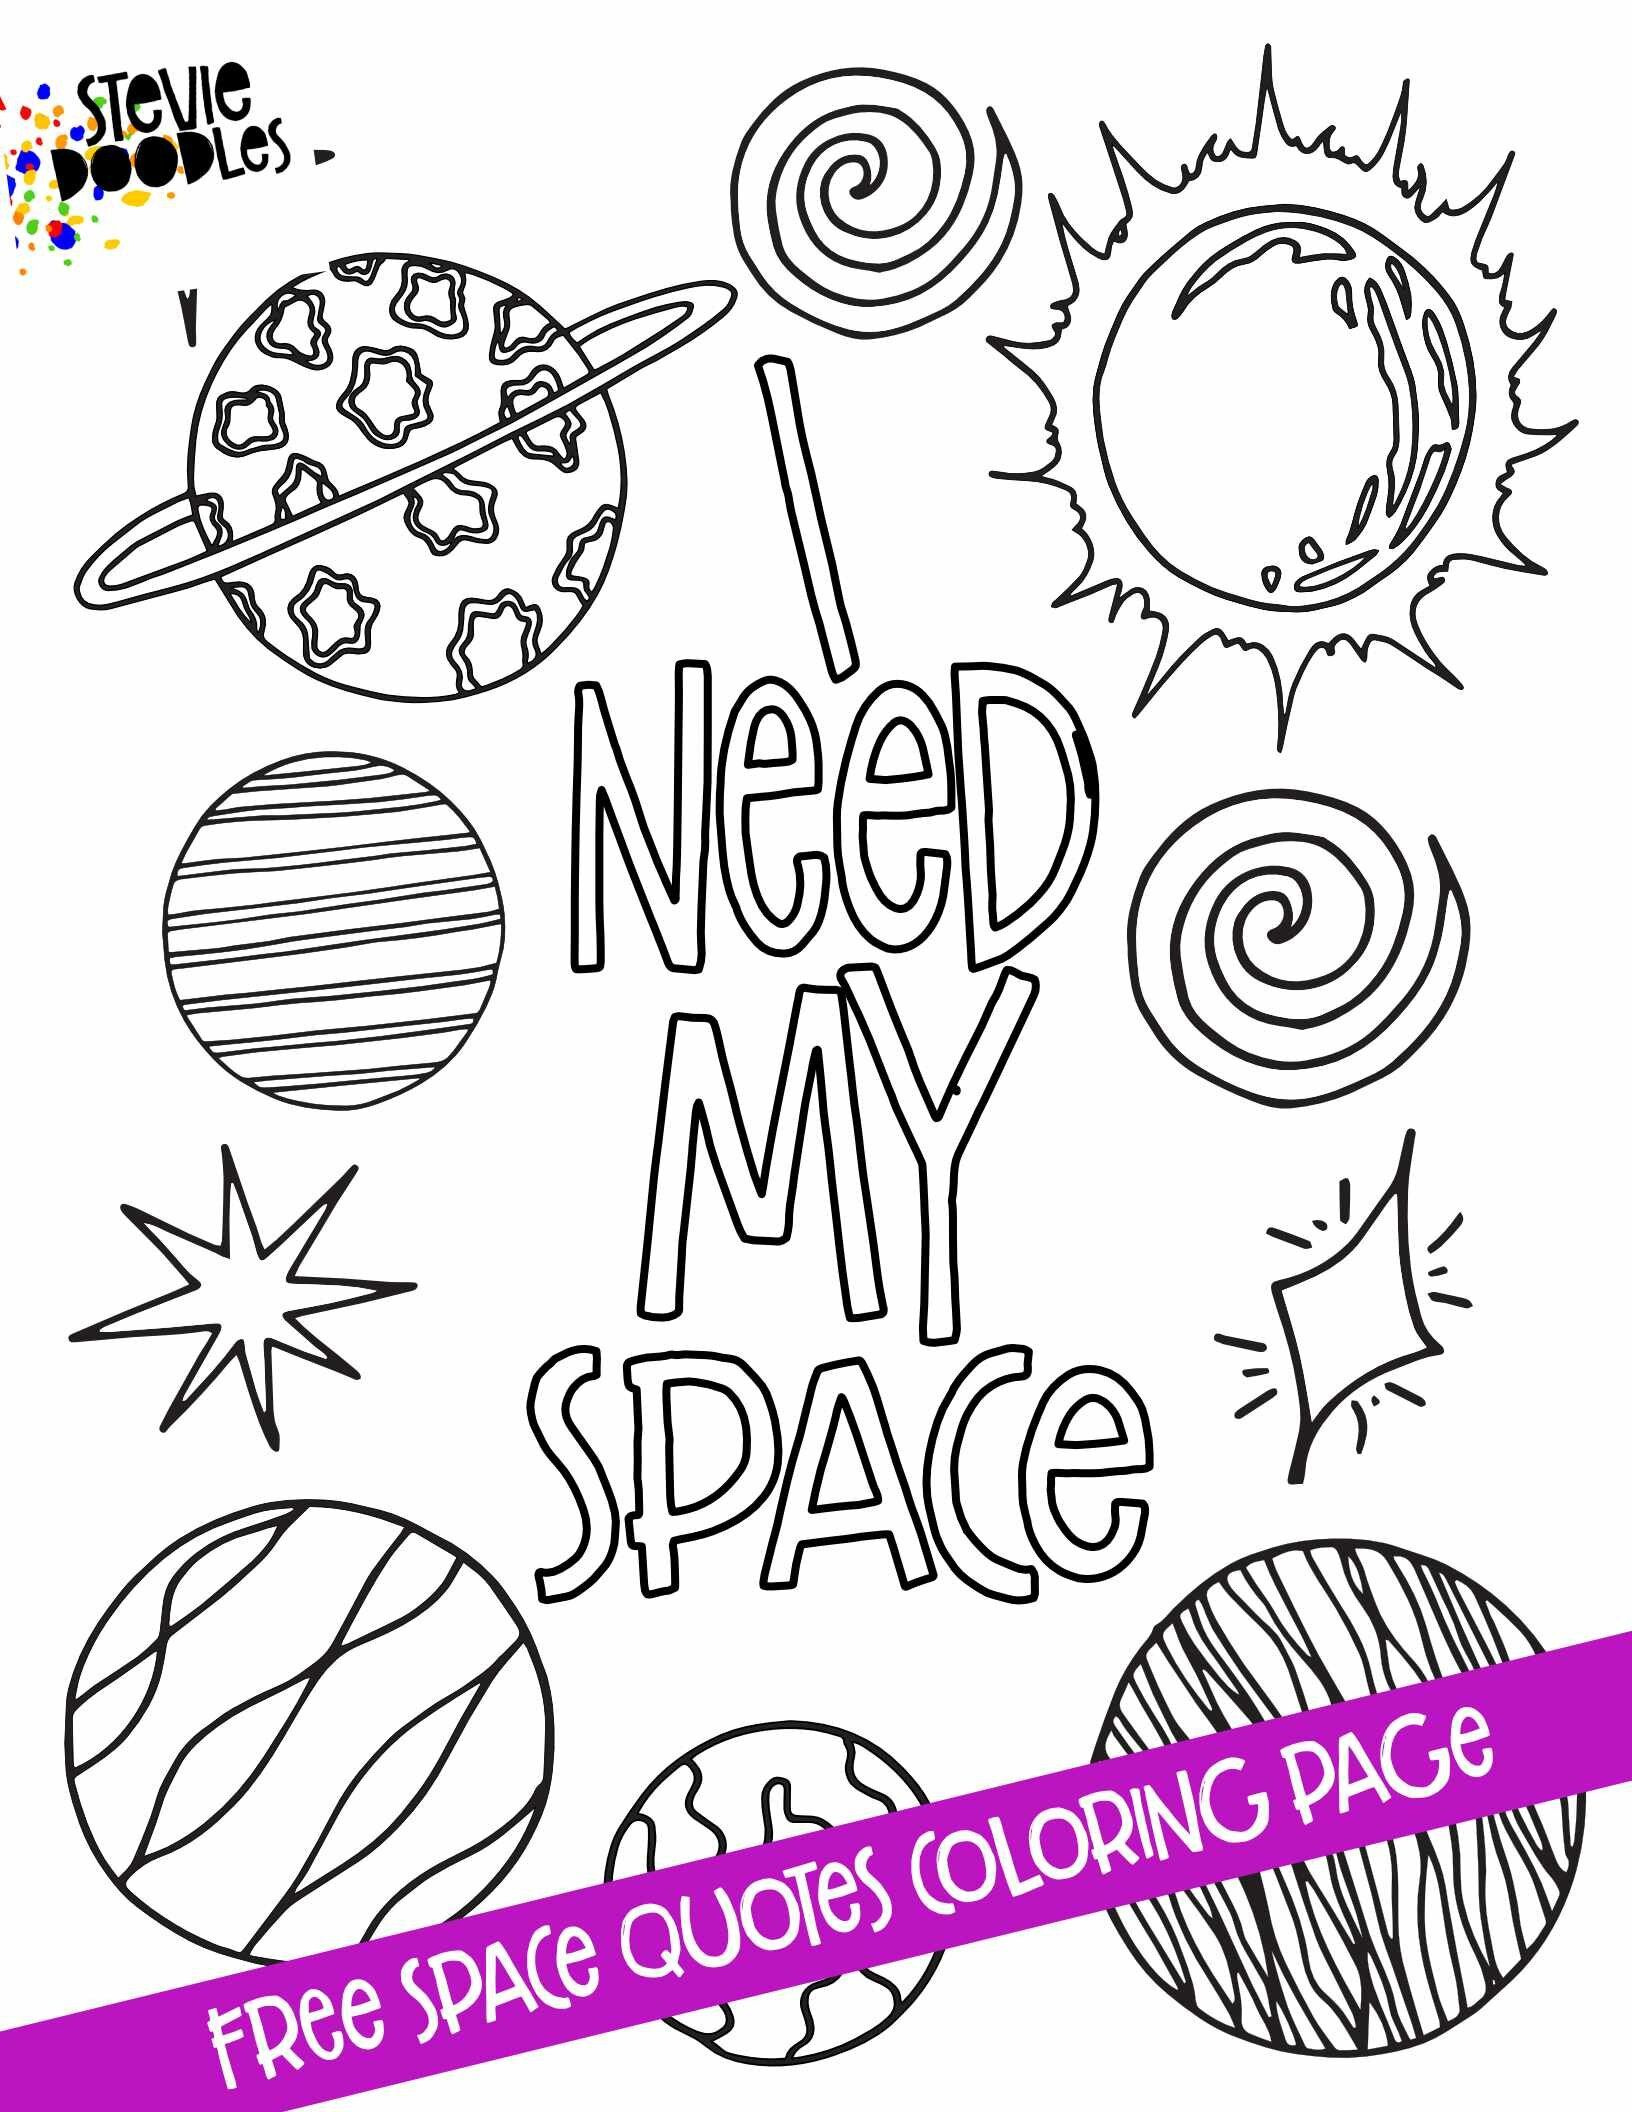 Space Quotes 5 Free Printable Coloring Pages Stevie Doodles Space Coloring Pages Coloring Pages Planet Coloring Pages [ 2112 x 1632 Pixel ]